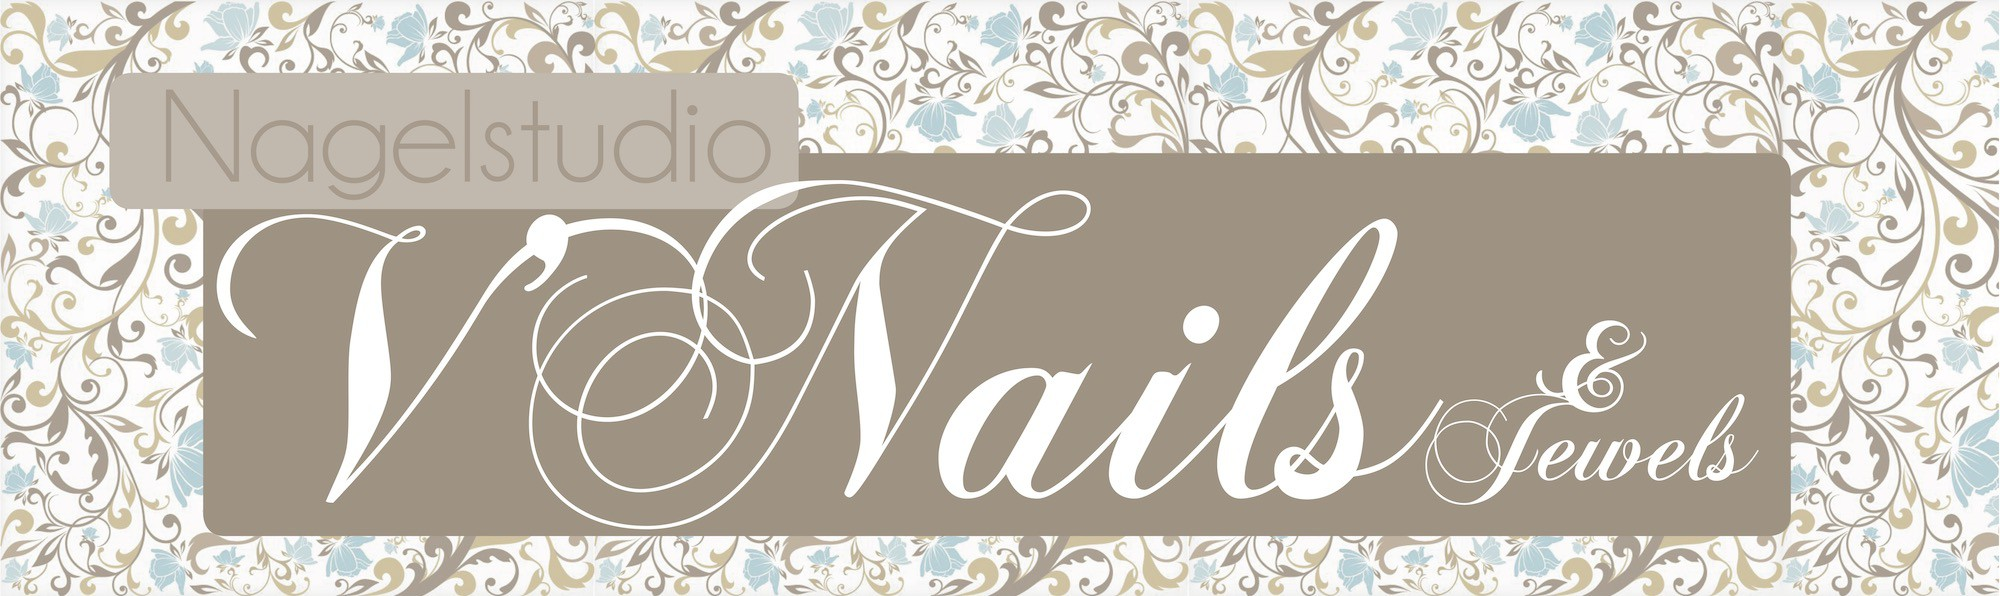 Header Nagelstudio V'Nails & Jewels - Juwelen Hamme